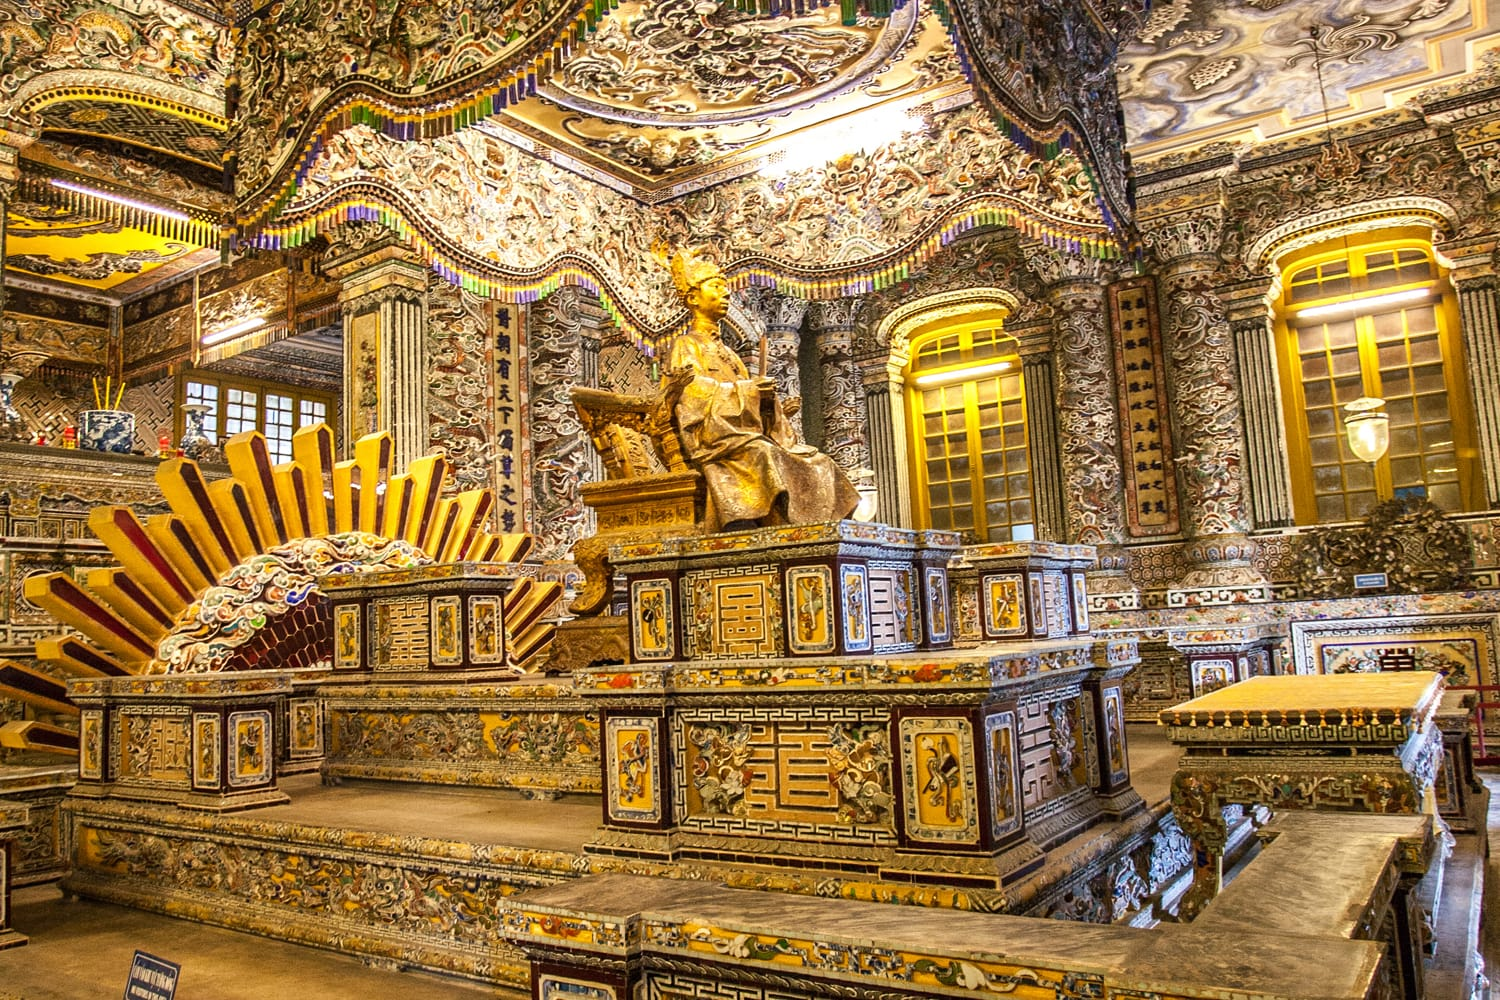 Interior of Tomb of Khai Dinh in Hue, Vietnam